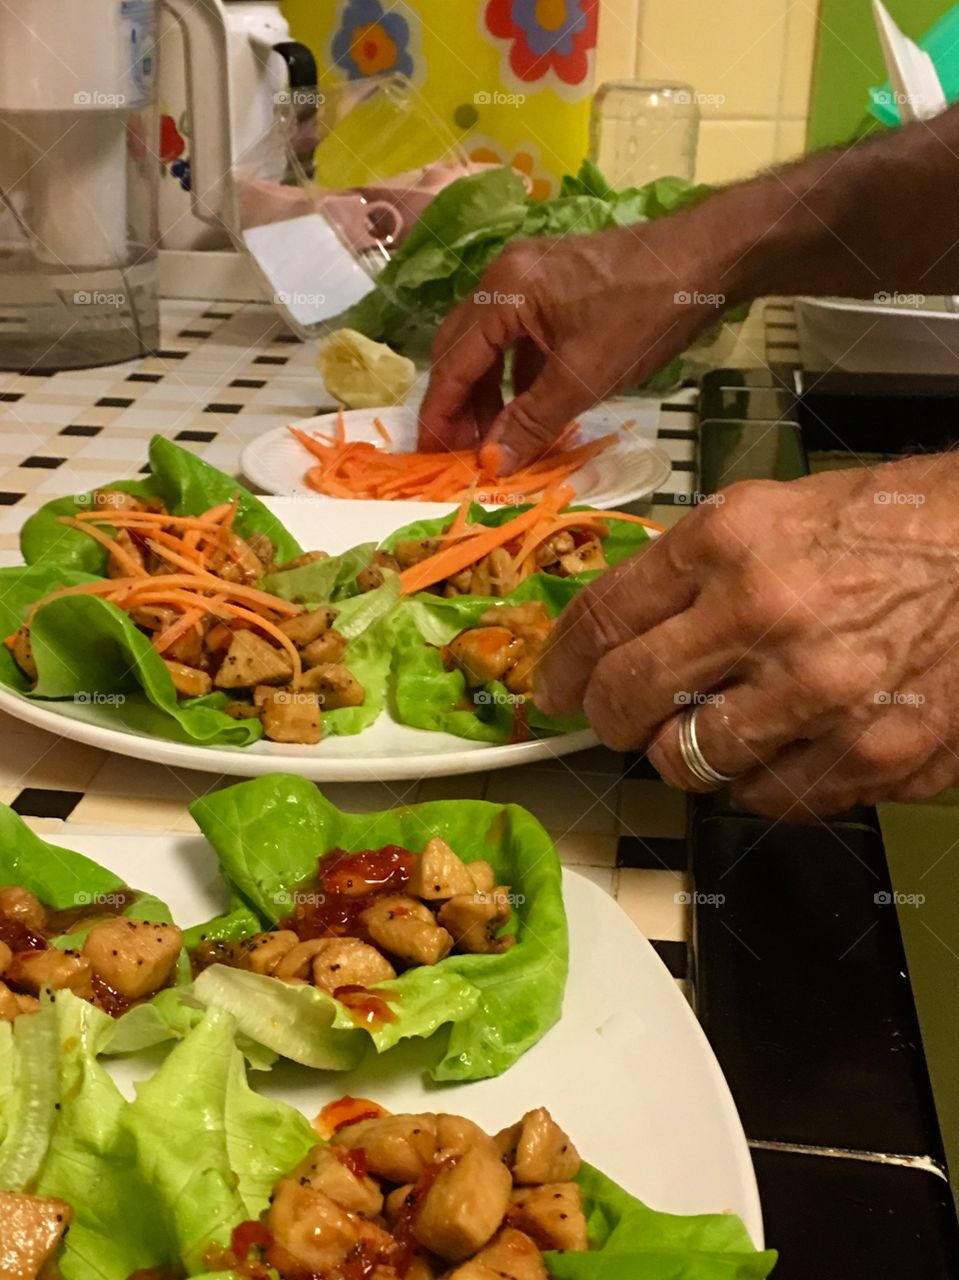 Working hands preparing Asian lettuce wraps.